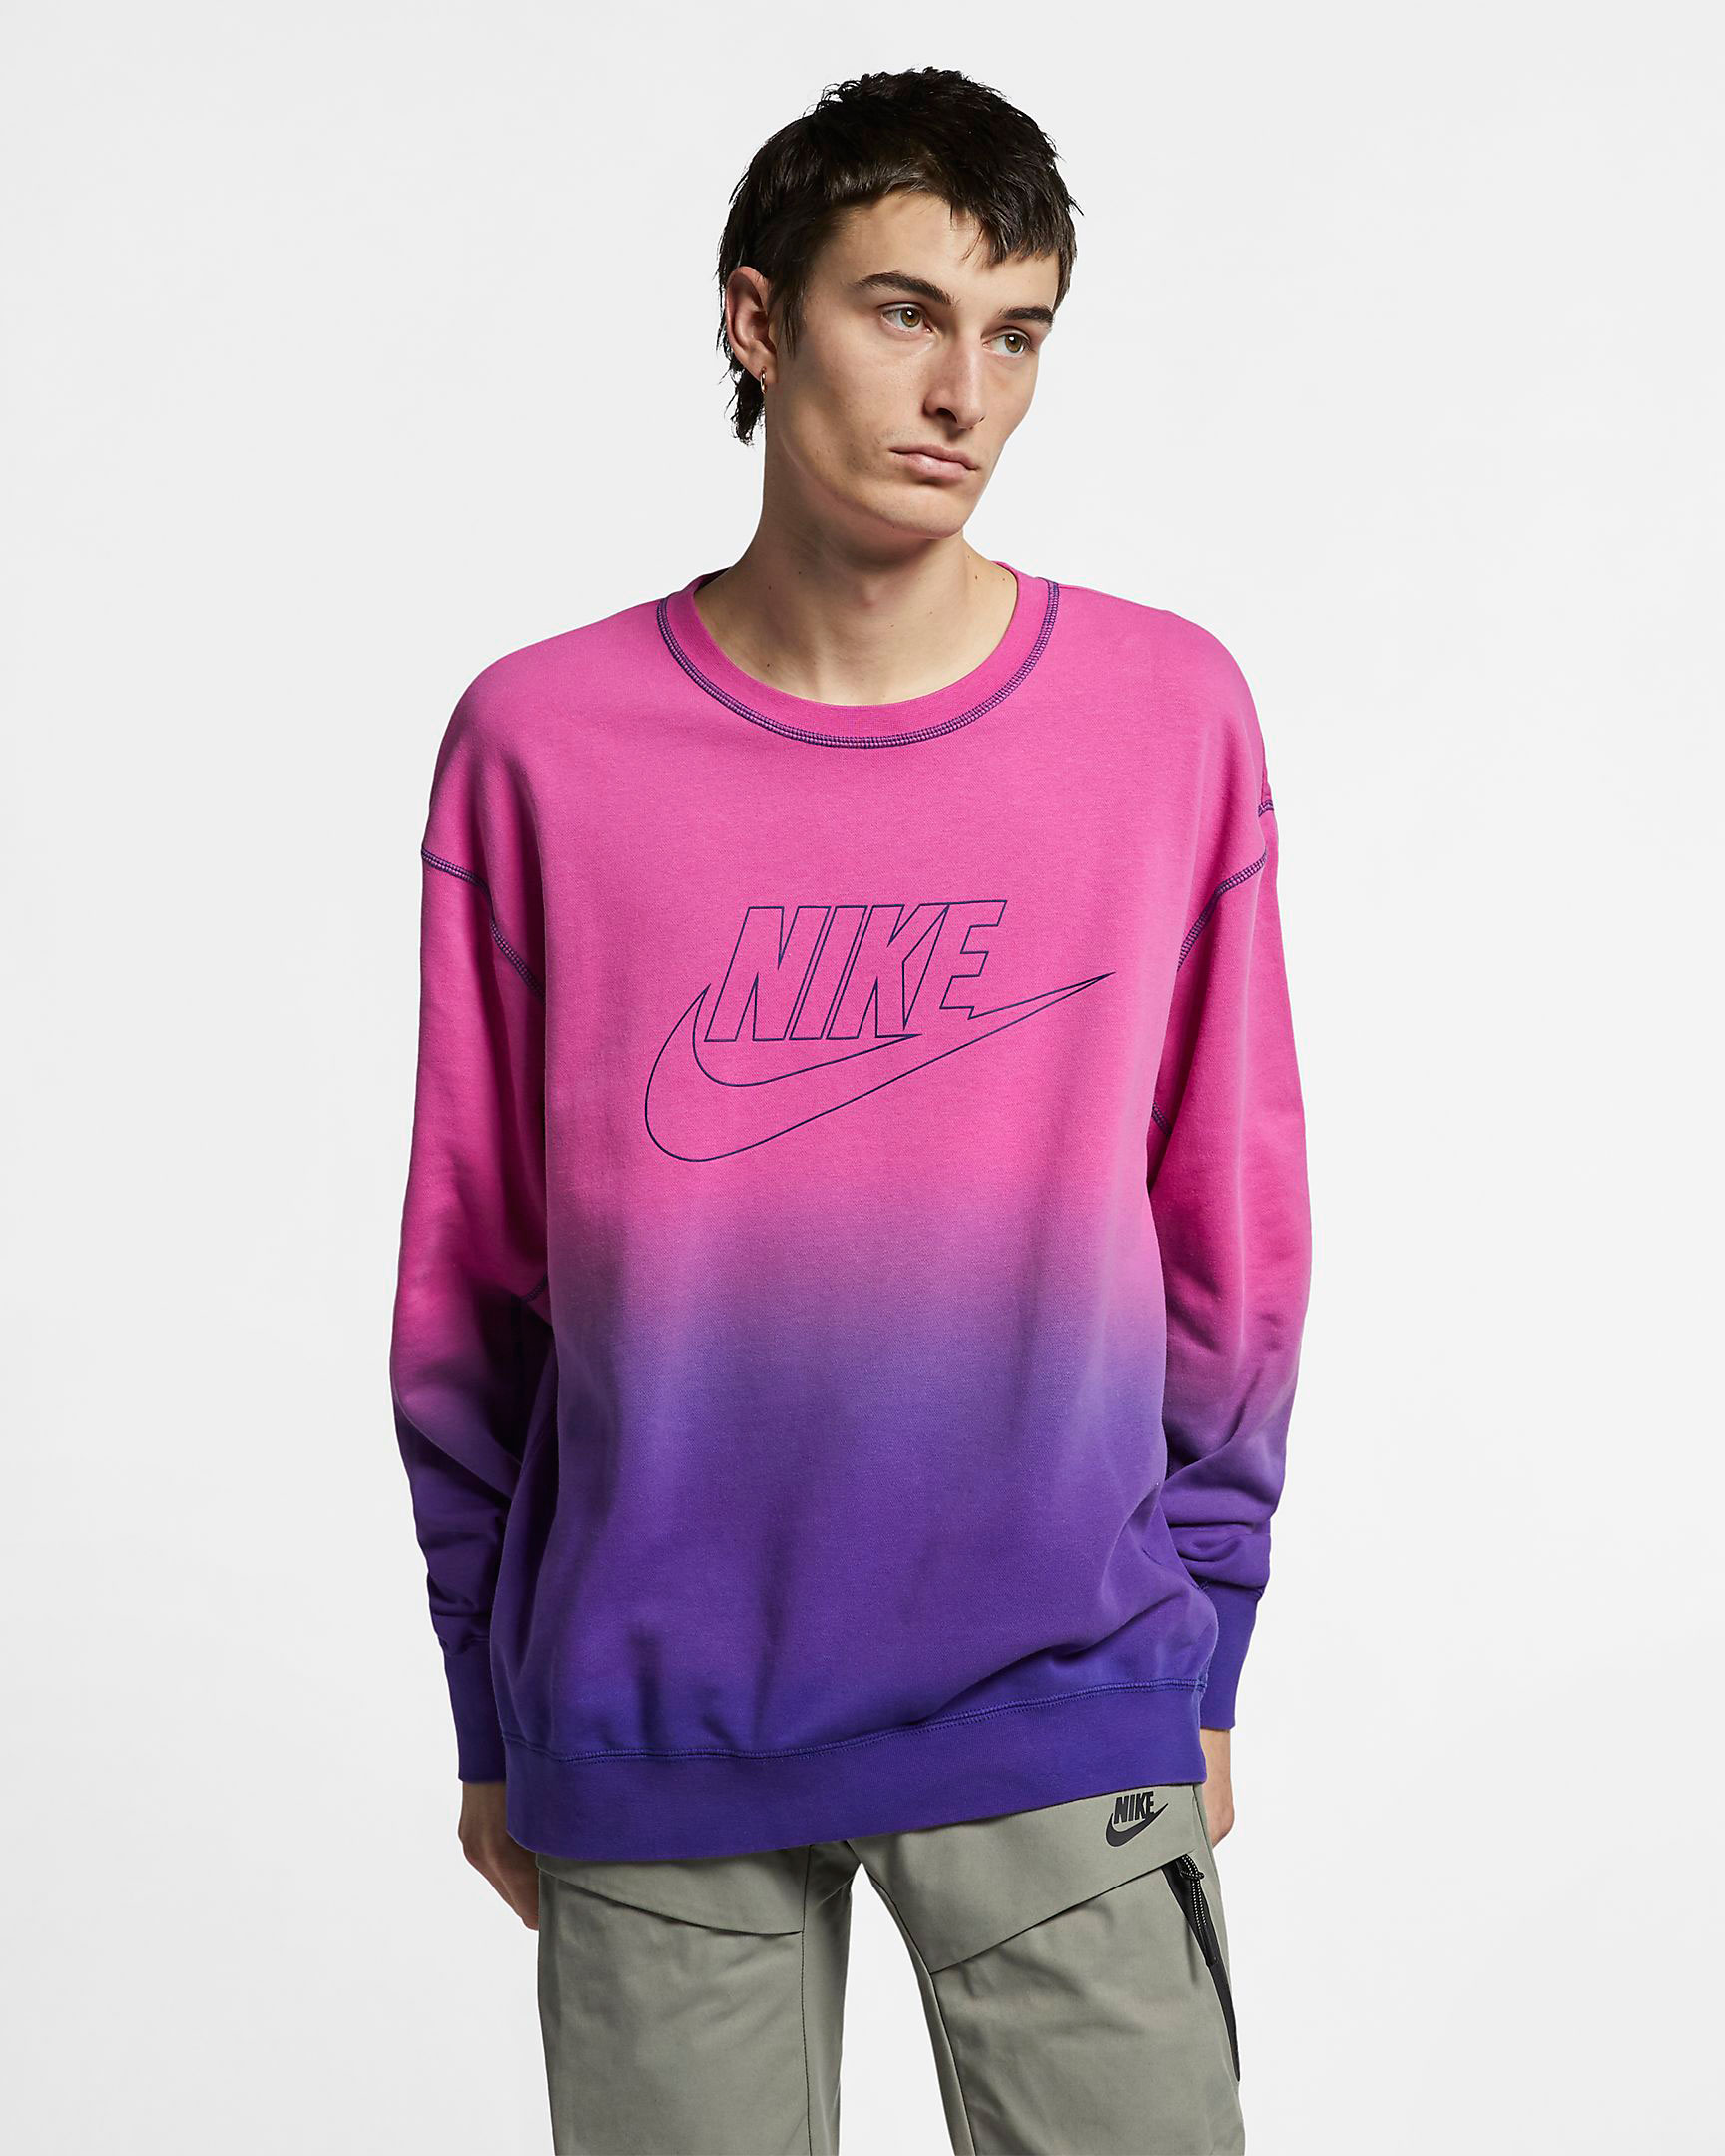 nike-throwback-futture-sweatshirt-match-1